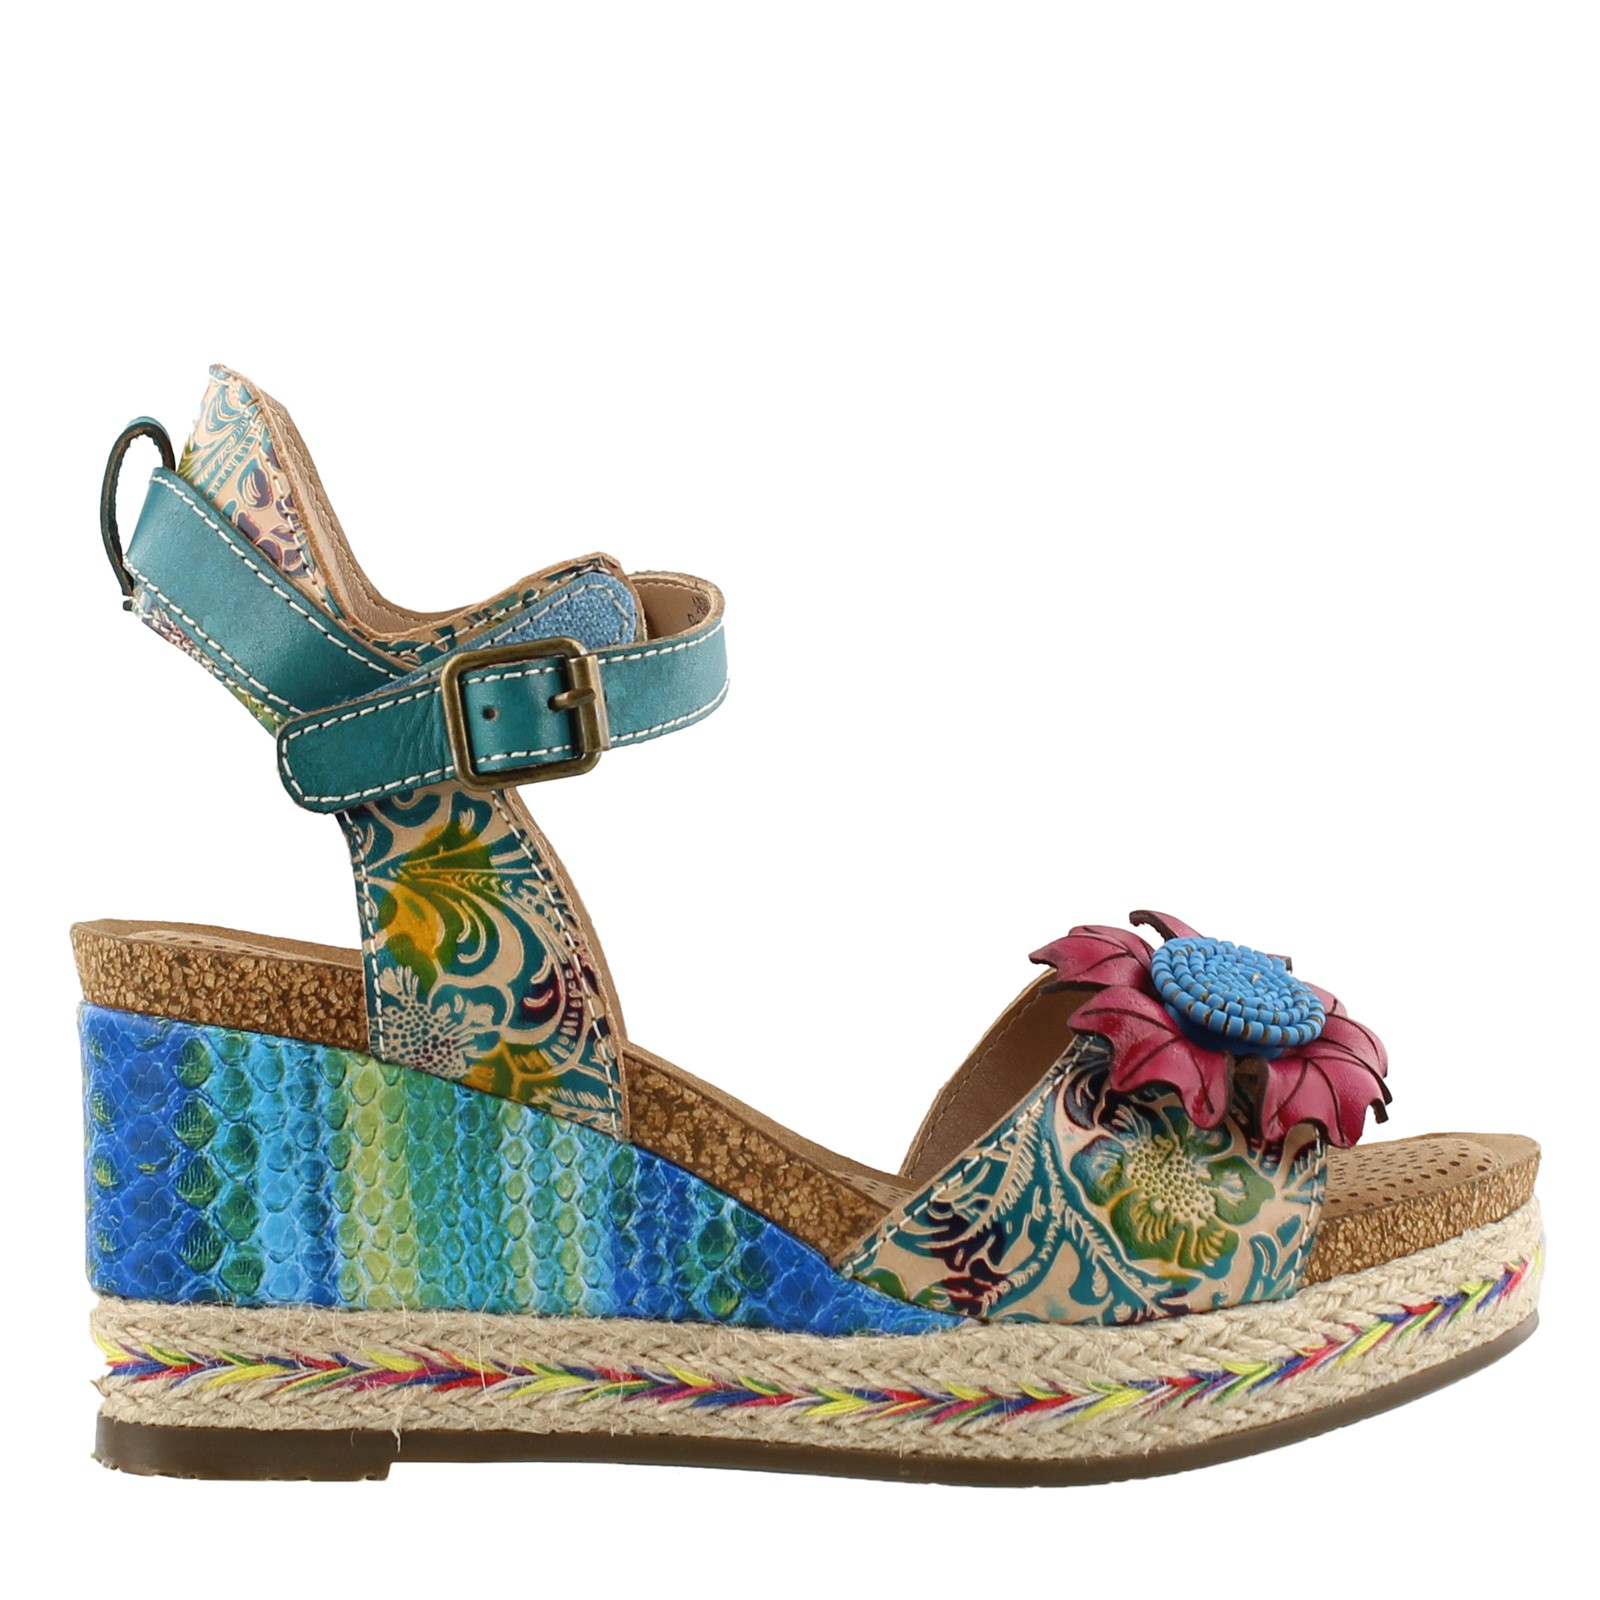 18689208b4 Home; Women's L'Artiste by Spring Step, Annmarie Wedge Sandal. Previous.  default view ...